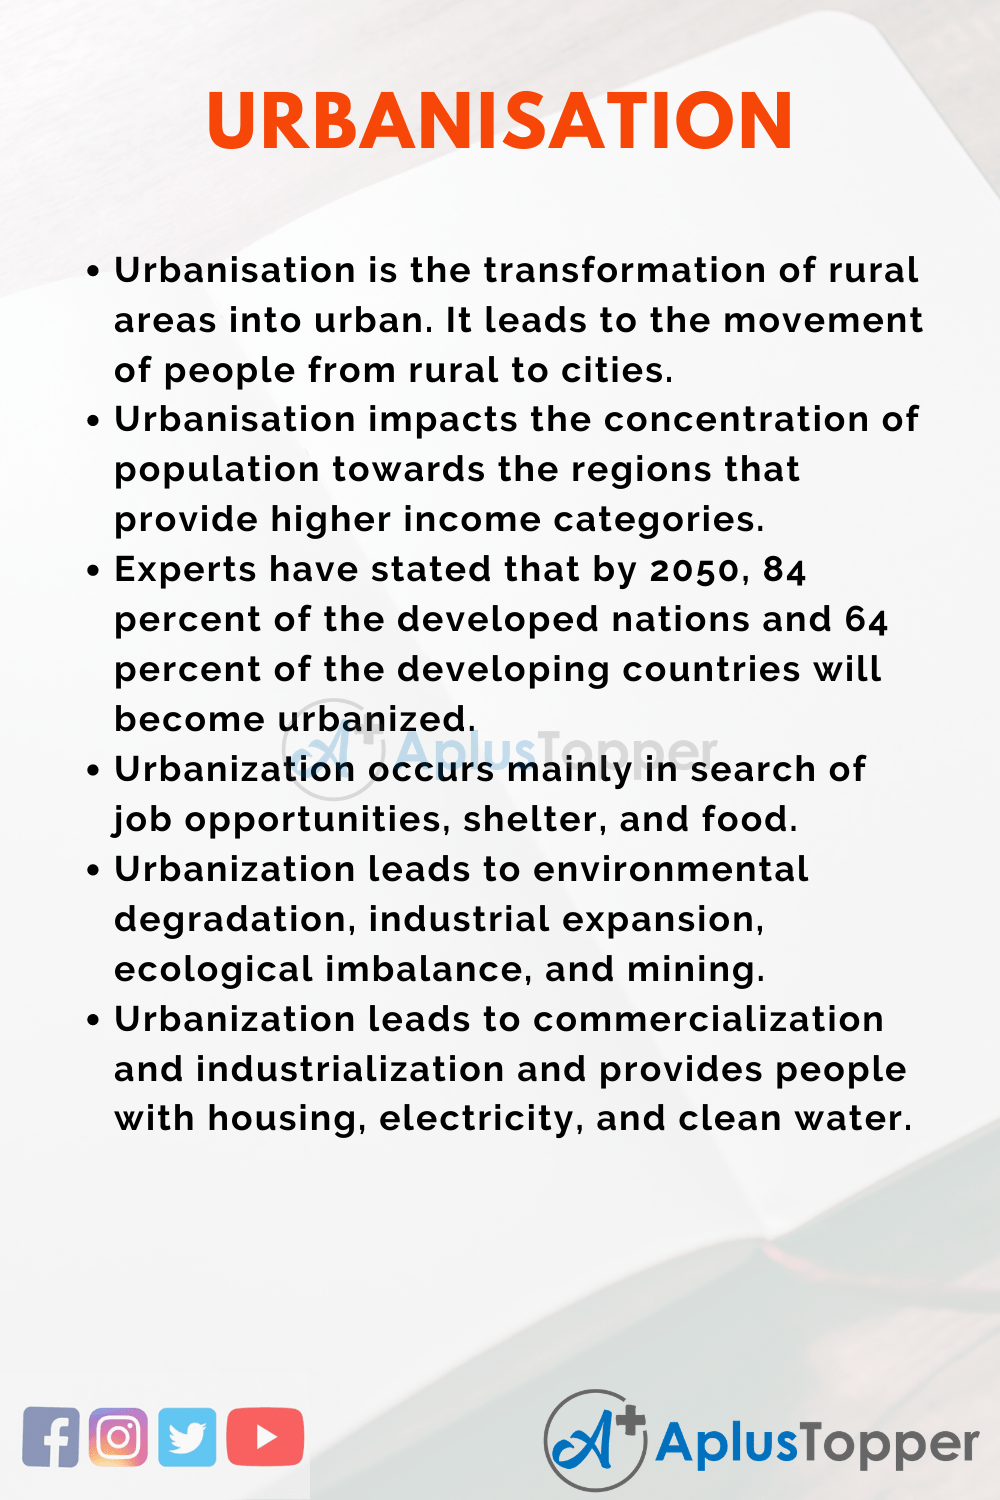 Essay on Urbanization